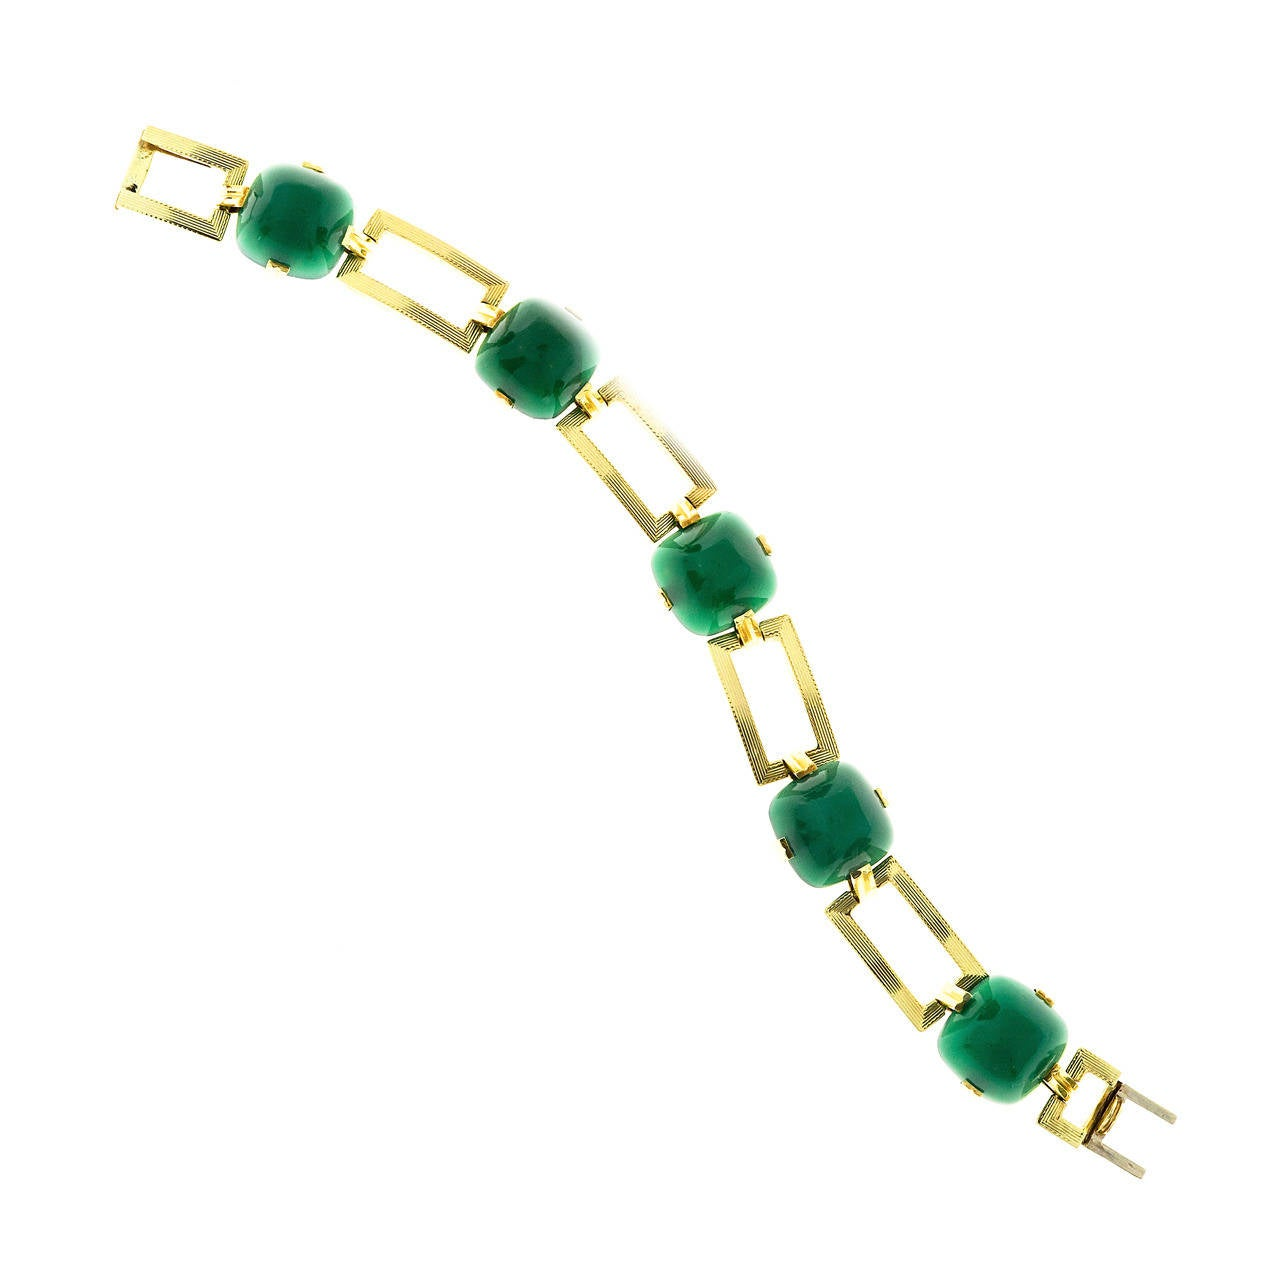 Retro Art Deco Sugarloaf Cut Green Onyx Gold Bracelet